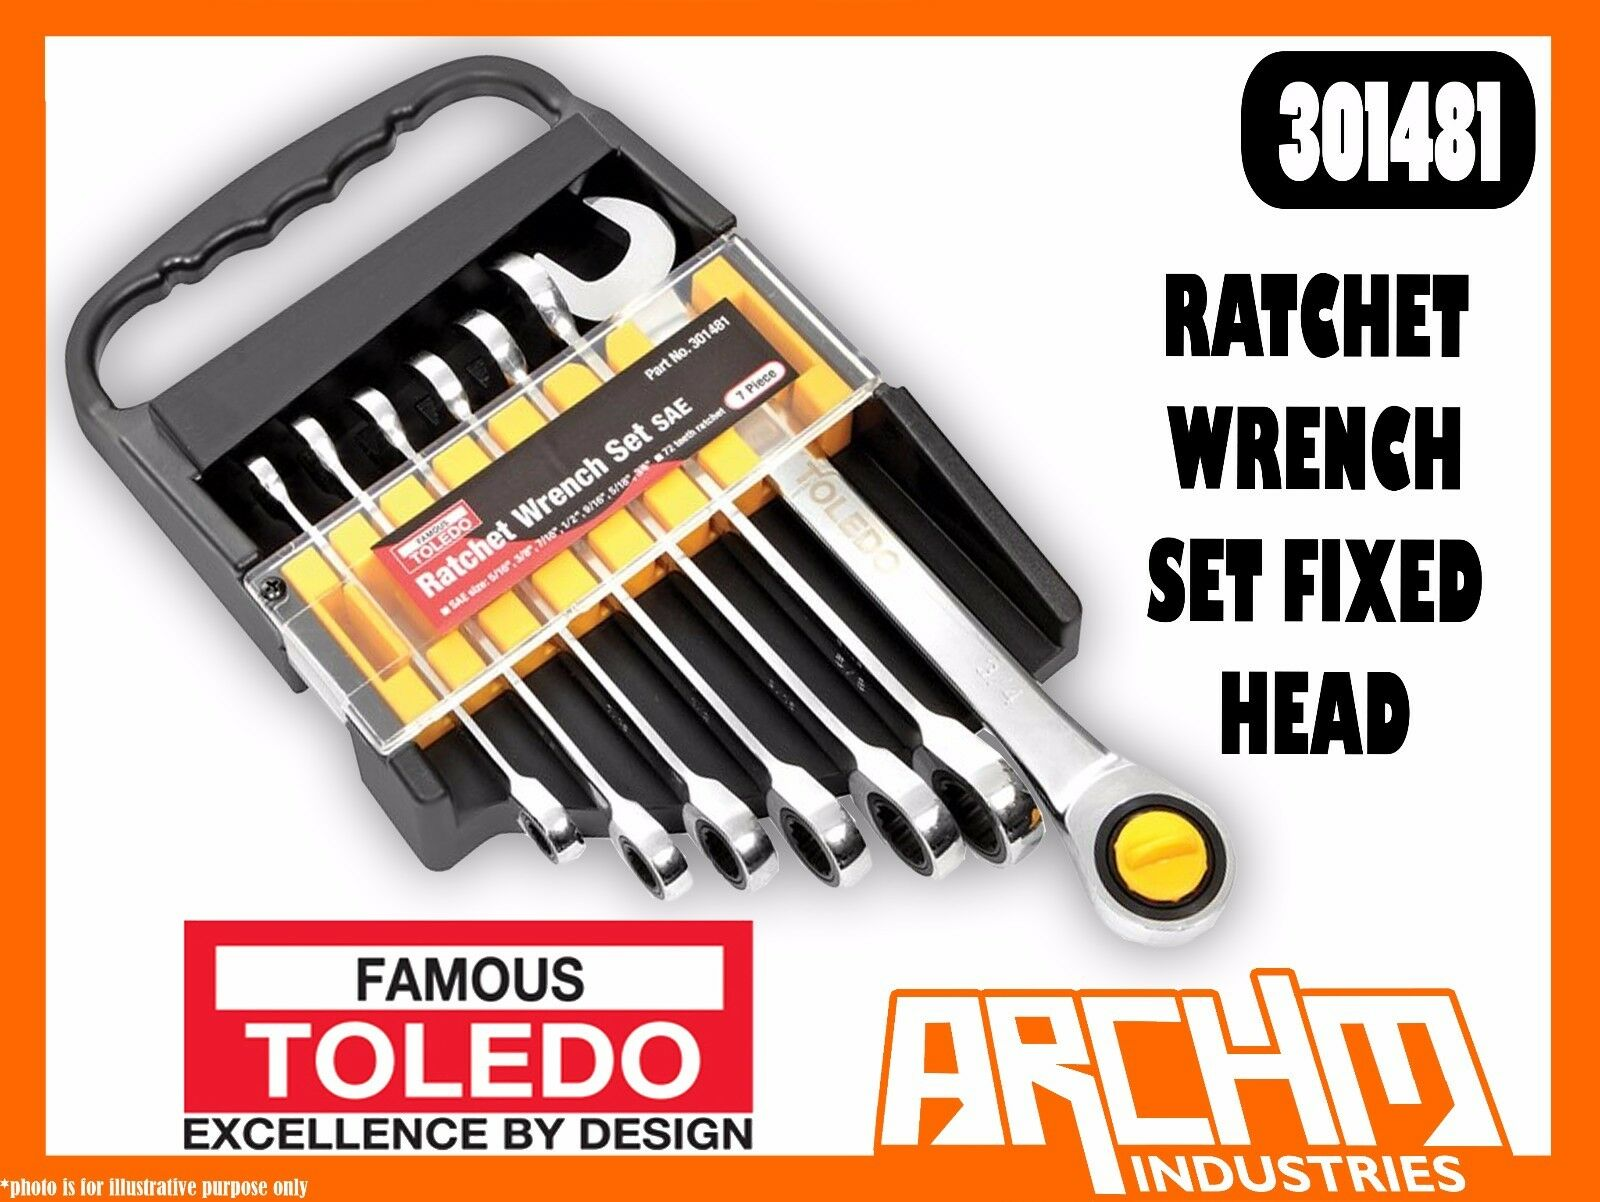 TOLEDO 301481 - RATCHET WRENCH SET FIXED HEAD - SAE 7 PC. (5 16 -3 4 ) RING OPEN